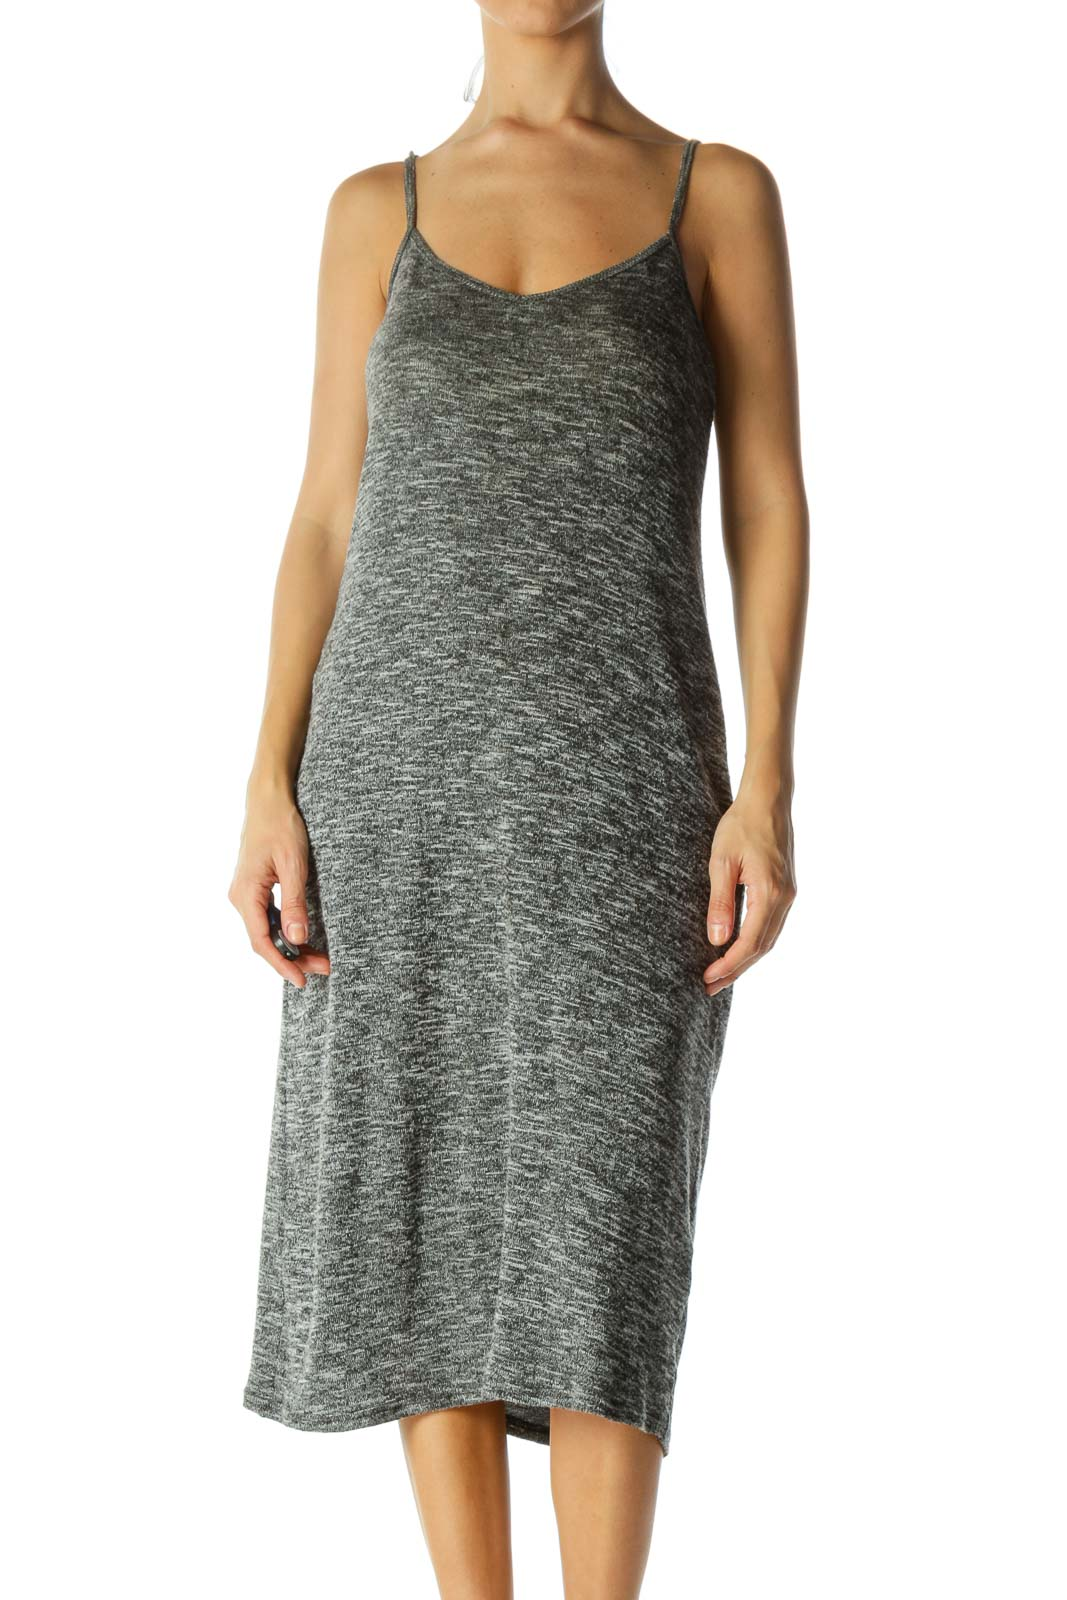 Heathered-Gray Spaghetti-Strap Midi Knit Dress